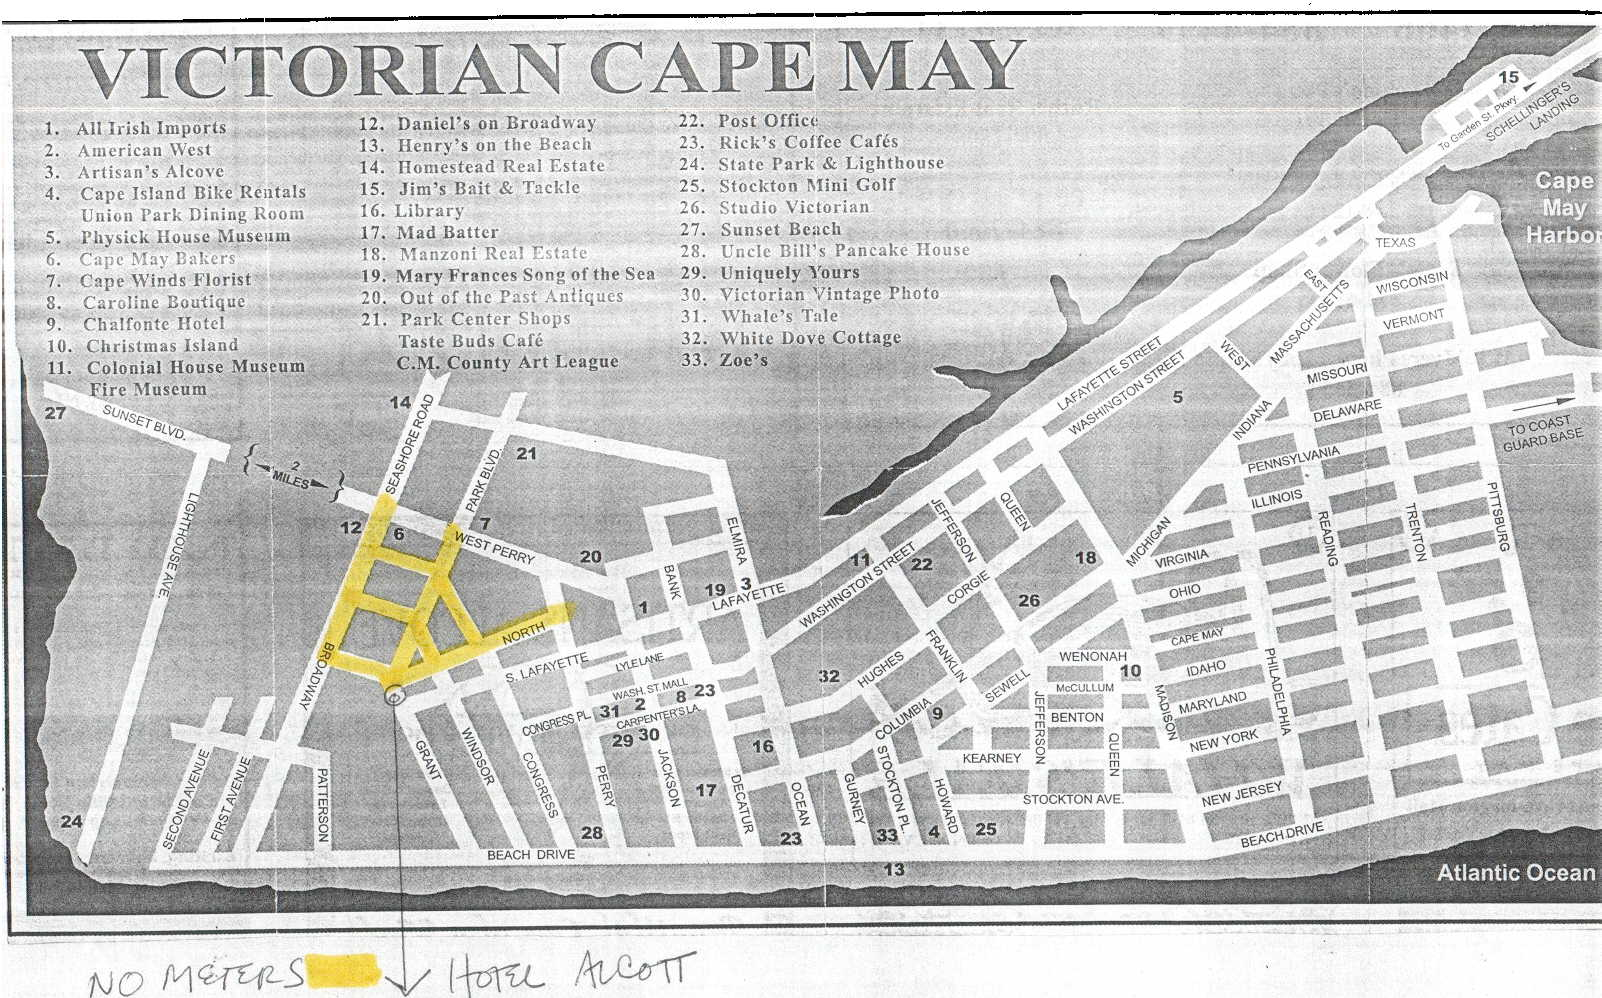 Eric and Aviva's Wedding Cape May Hotel Map on